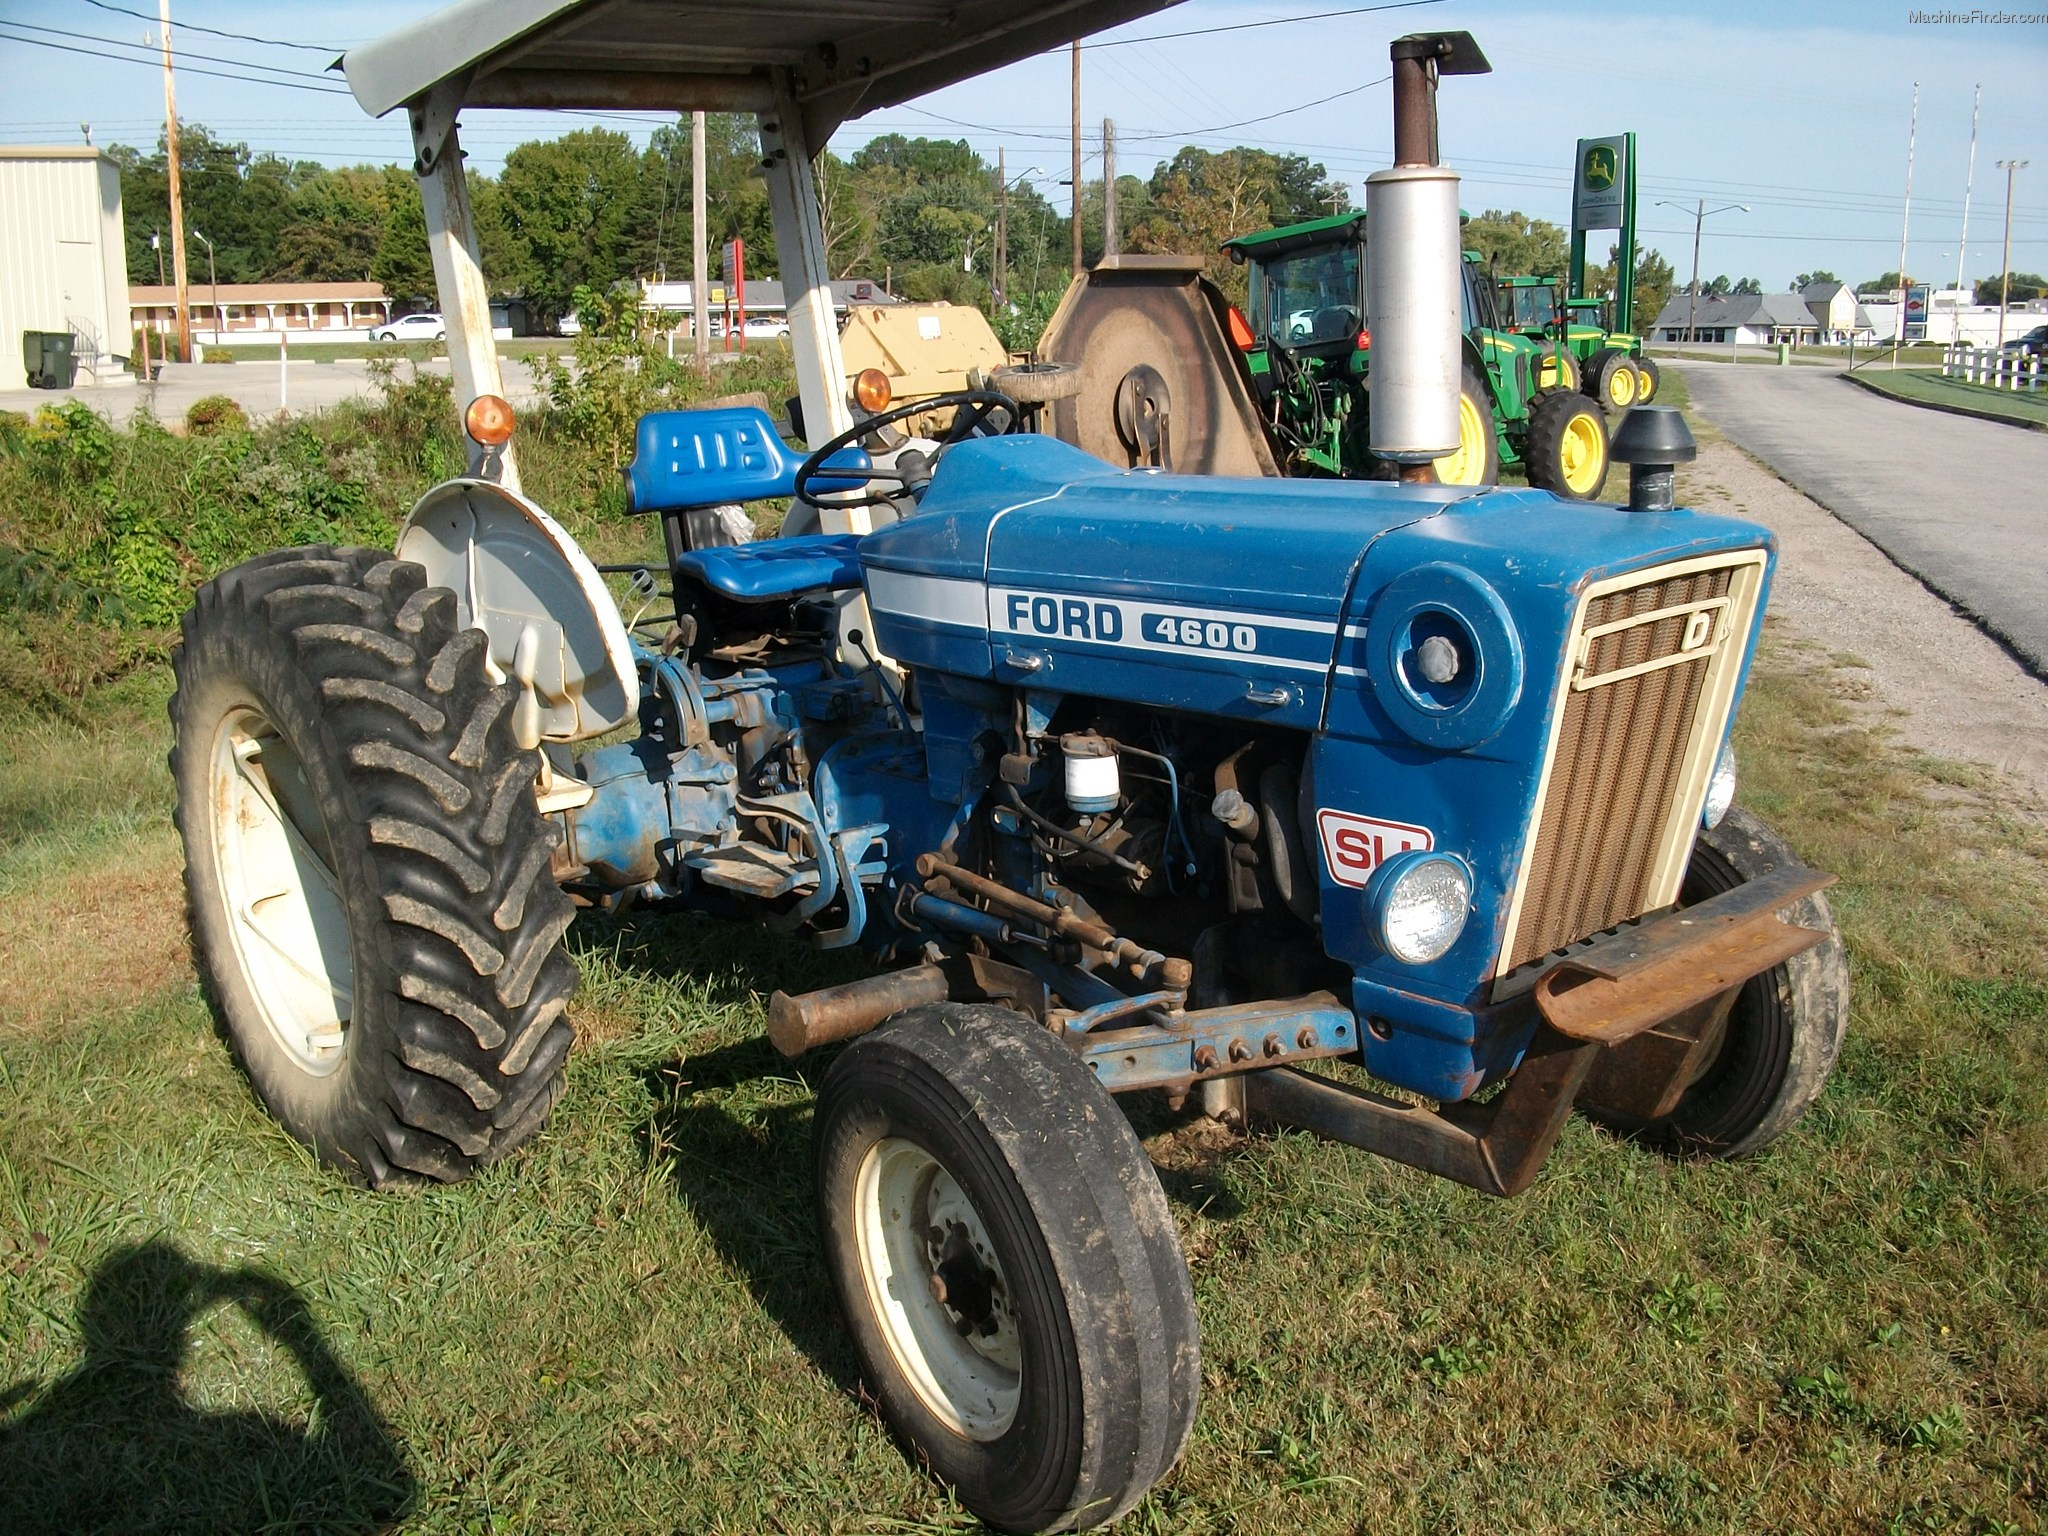 Ford 4600 Tractor Information : Ford tractor data